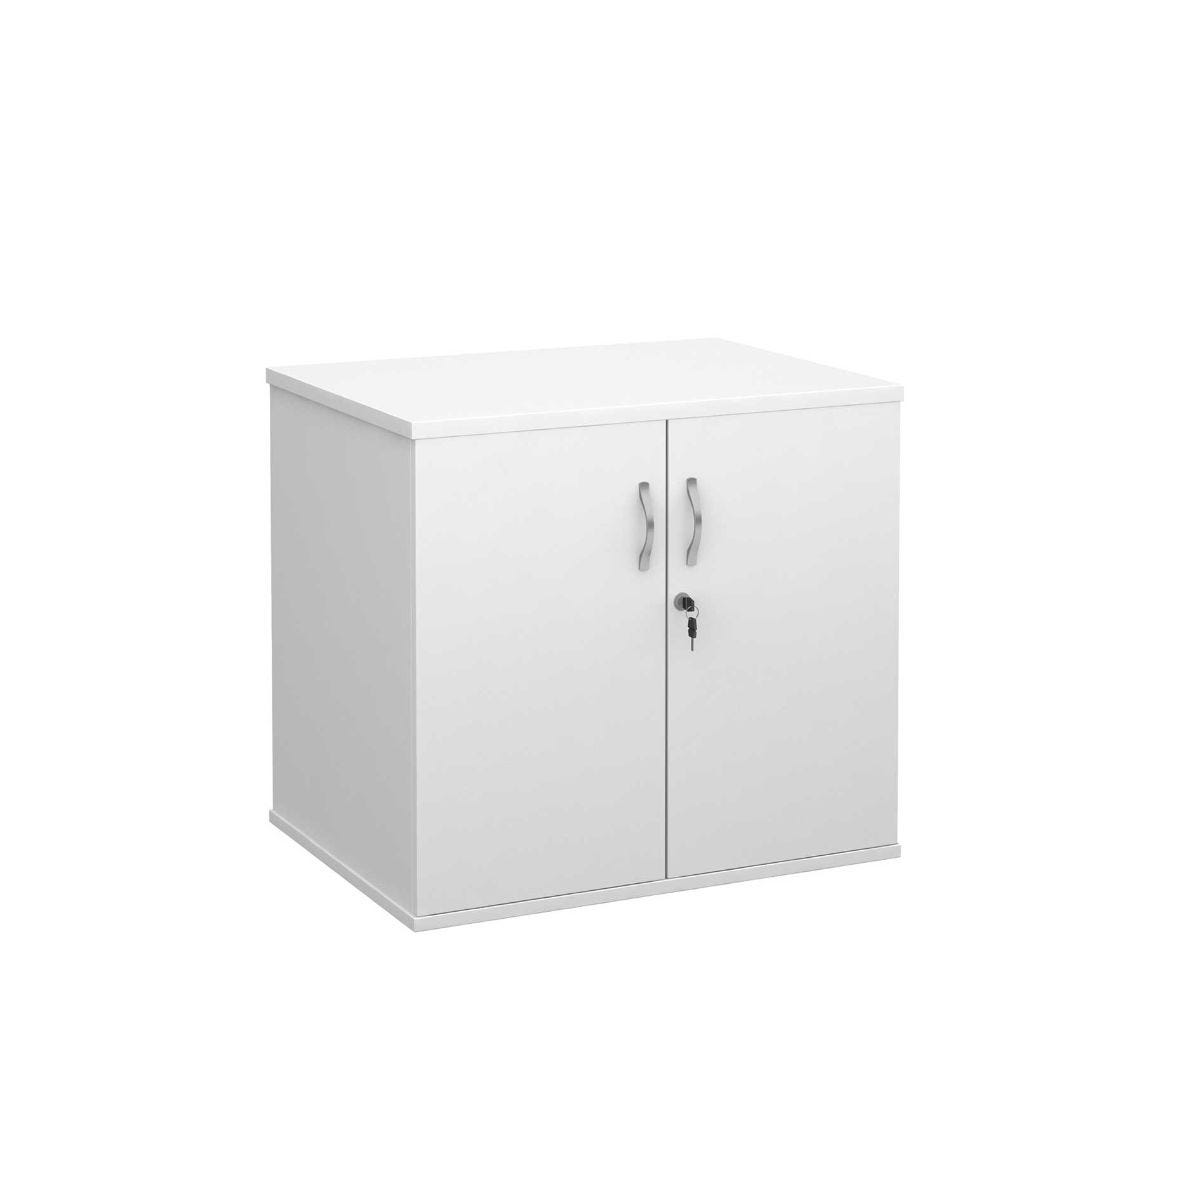 Desk High Cupboard with Doors, White